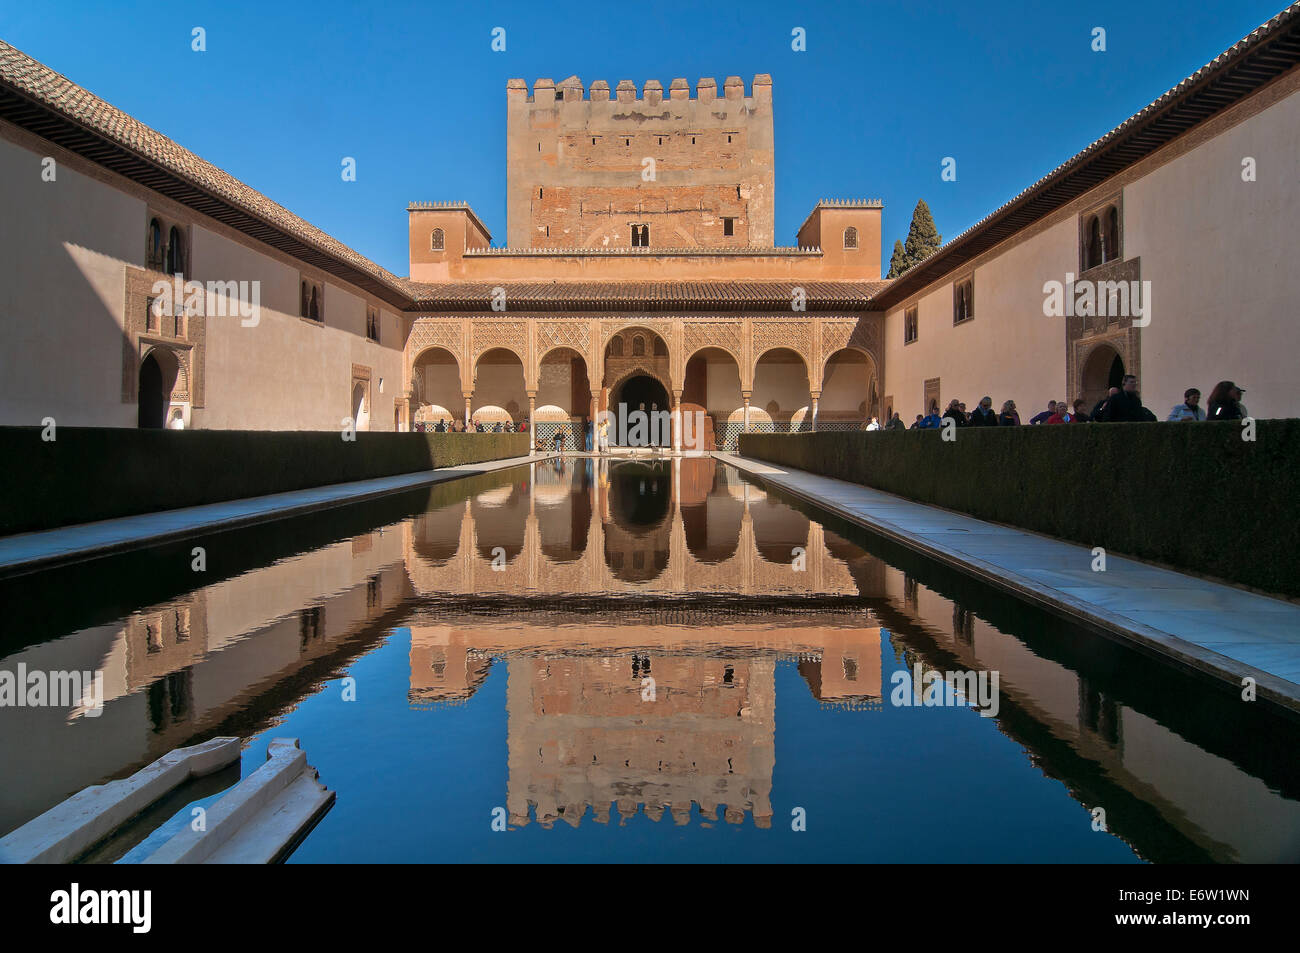 Court of the Myrtles and Comares Tower, The Alhambra, Granada, Region of Andalusia, Spain, Europe - Stock Image